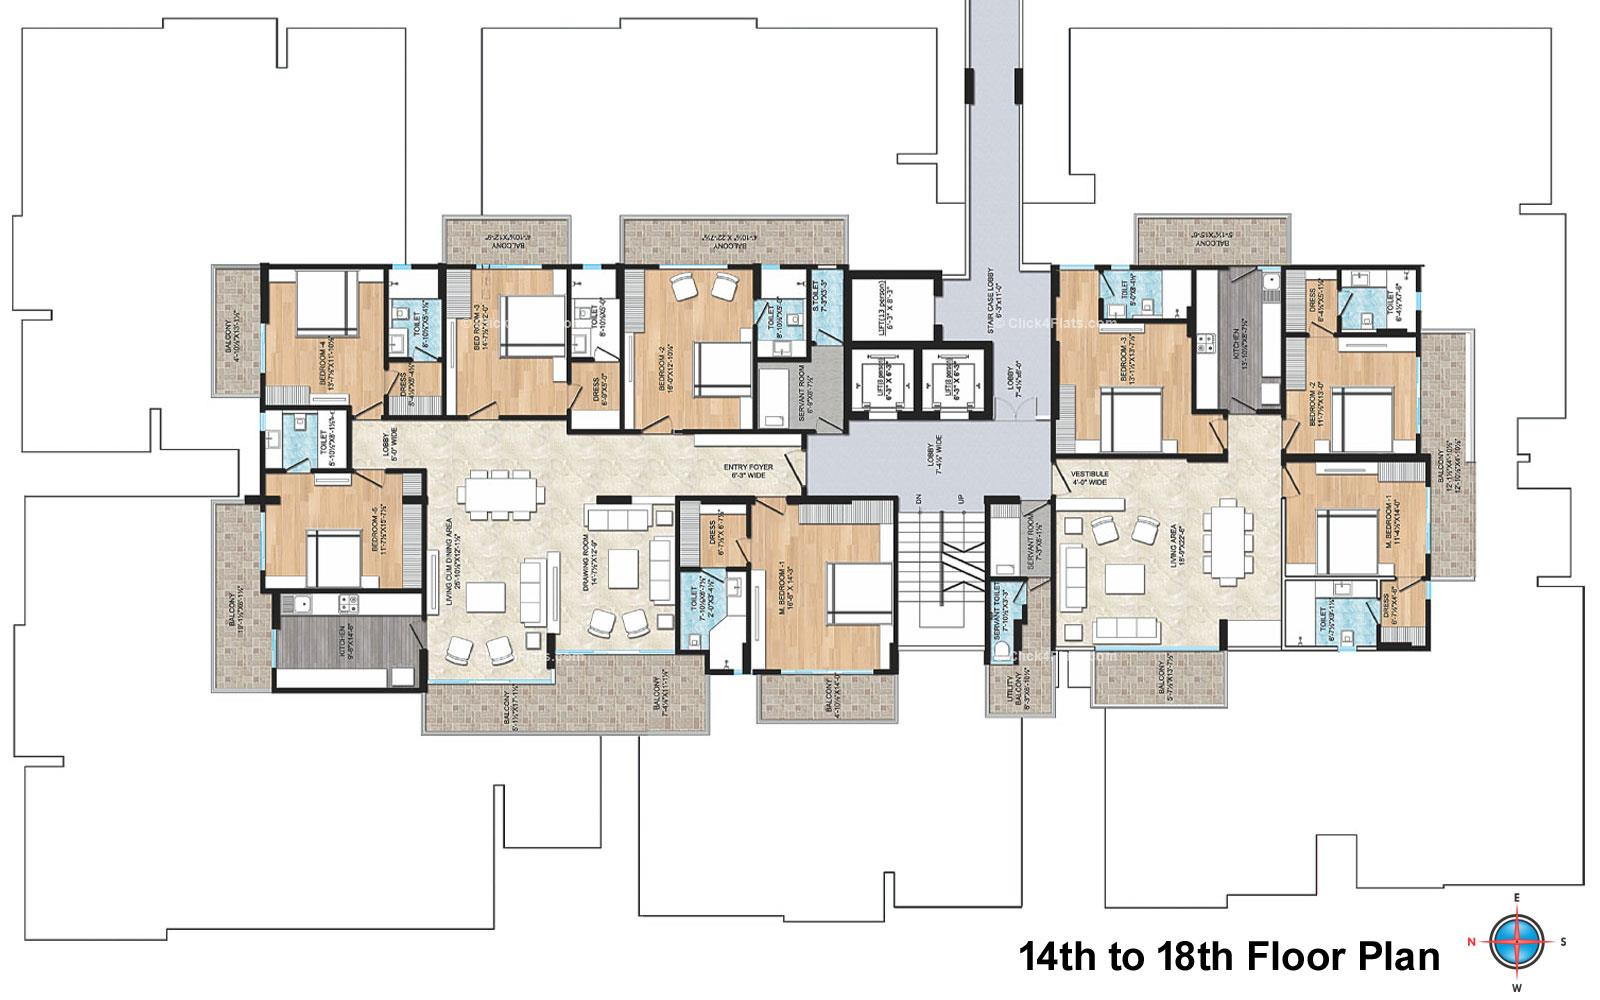 Air Ridhiraj AAA Group 14TH-18TH Floor Typical Layout